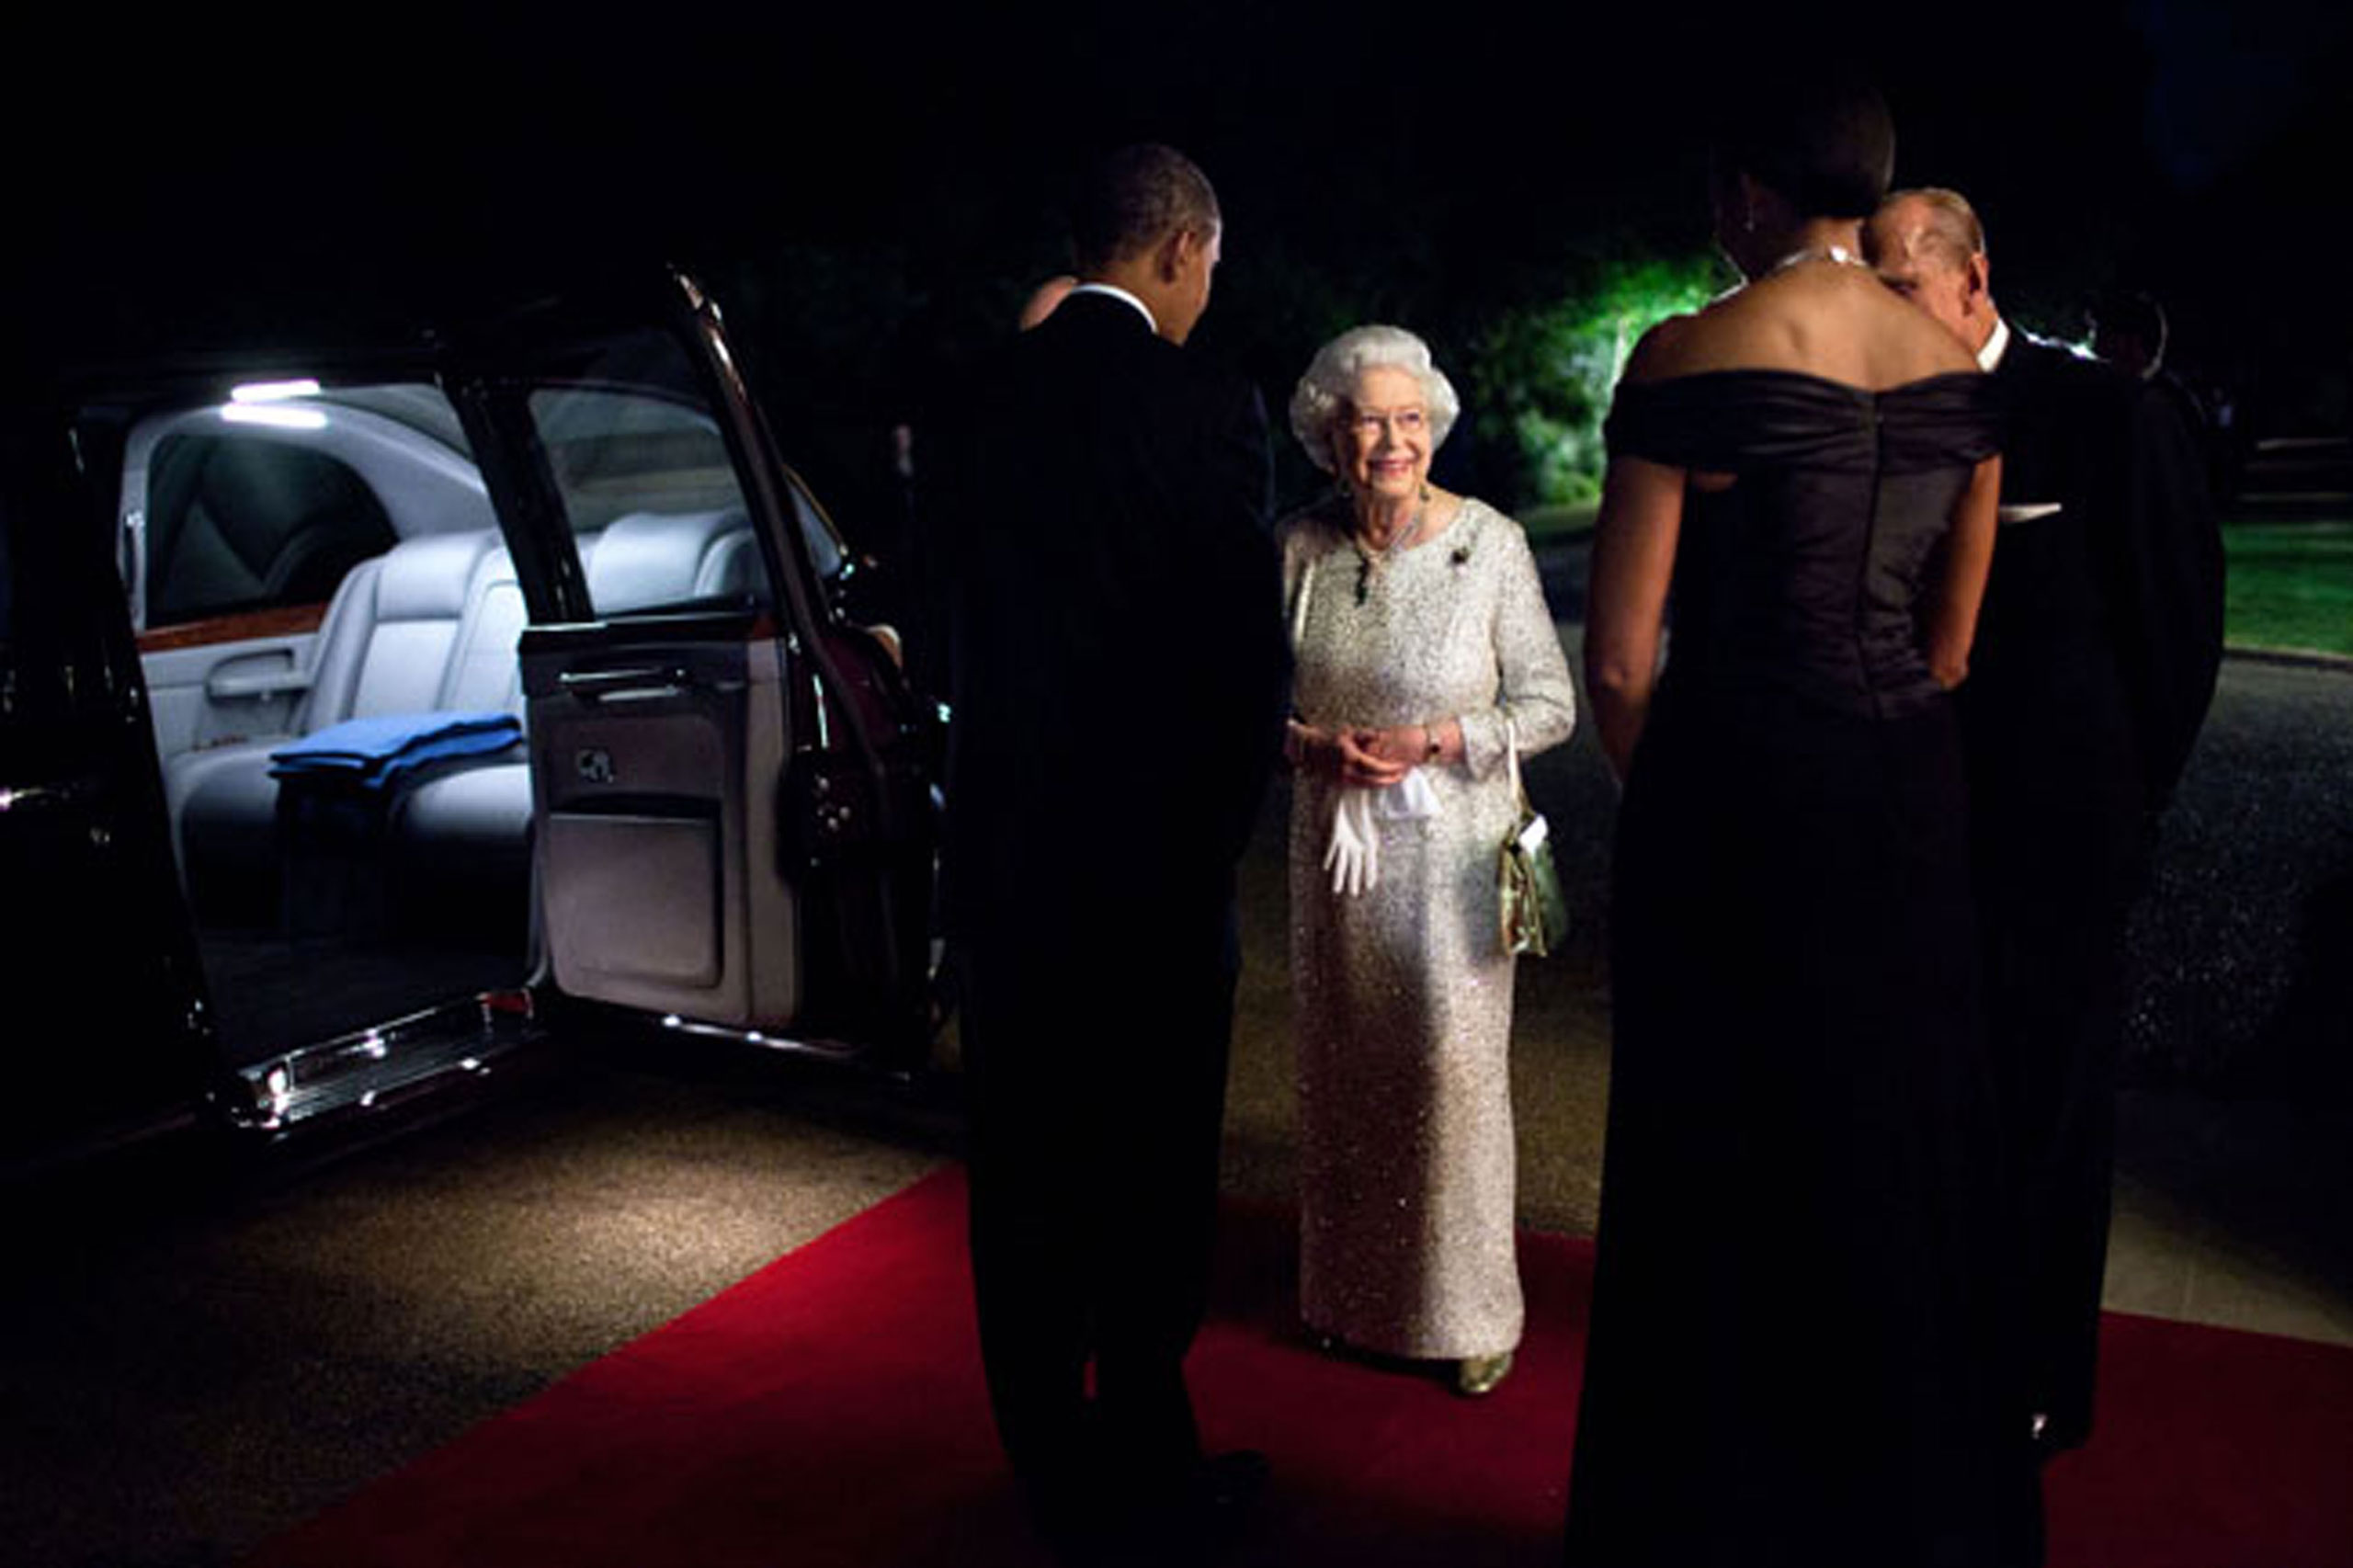 The President and First Lady bid farewell to Queen Elizabeth II and Prince Philip, Duke of Edinburgh, before they departed Winfield House in London following a dinner in honor of the Queen, May 25, 2011.